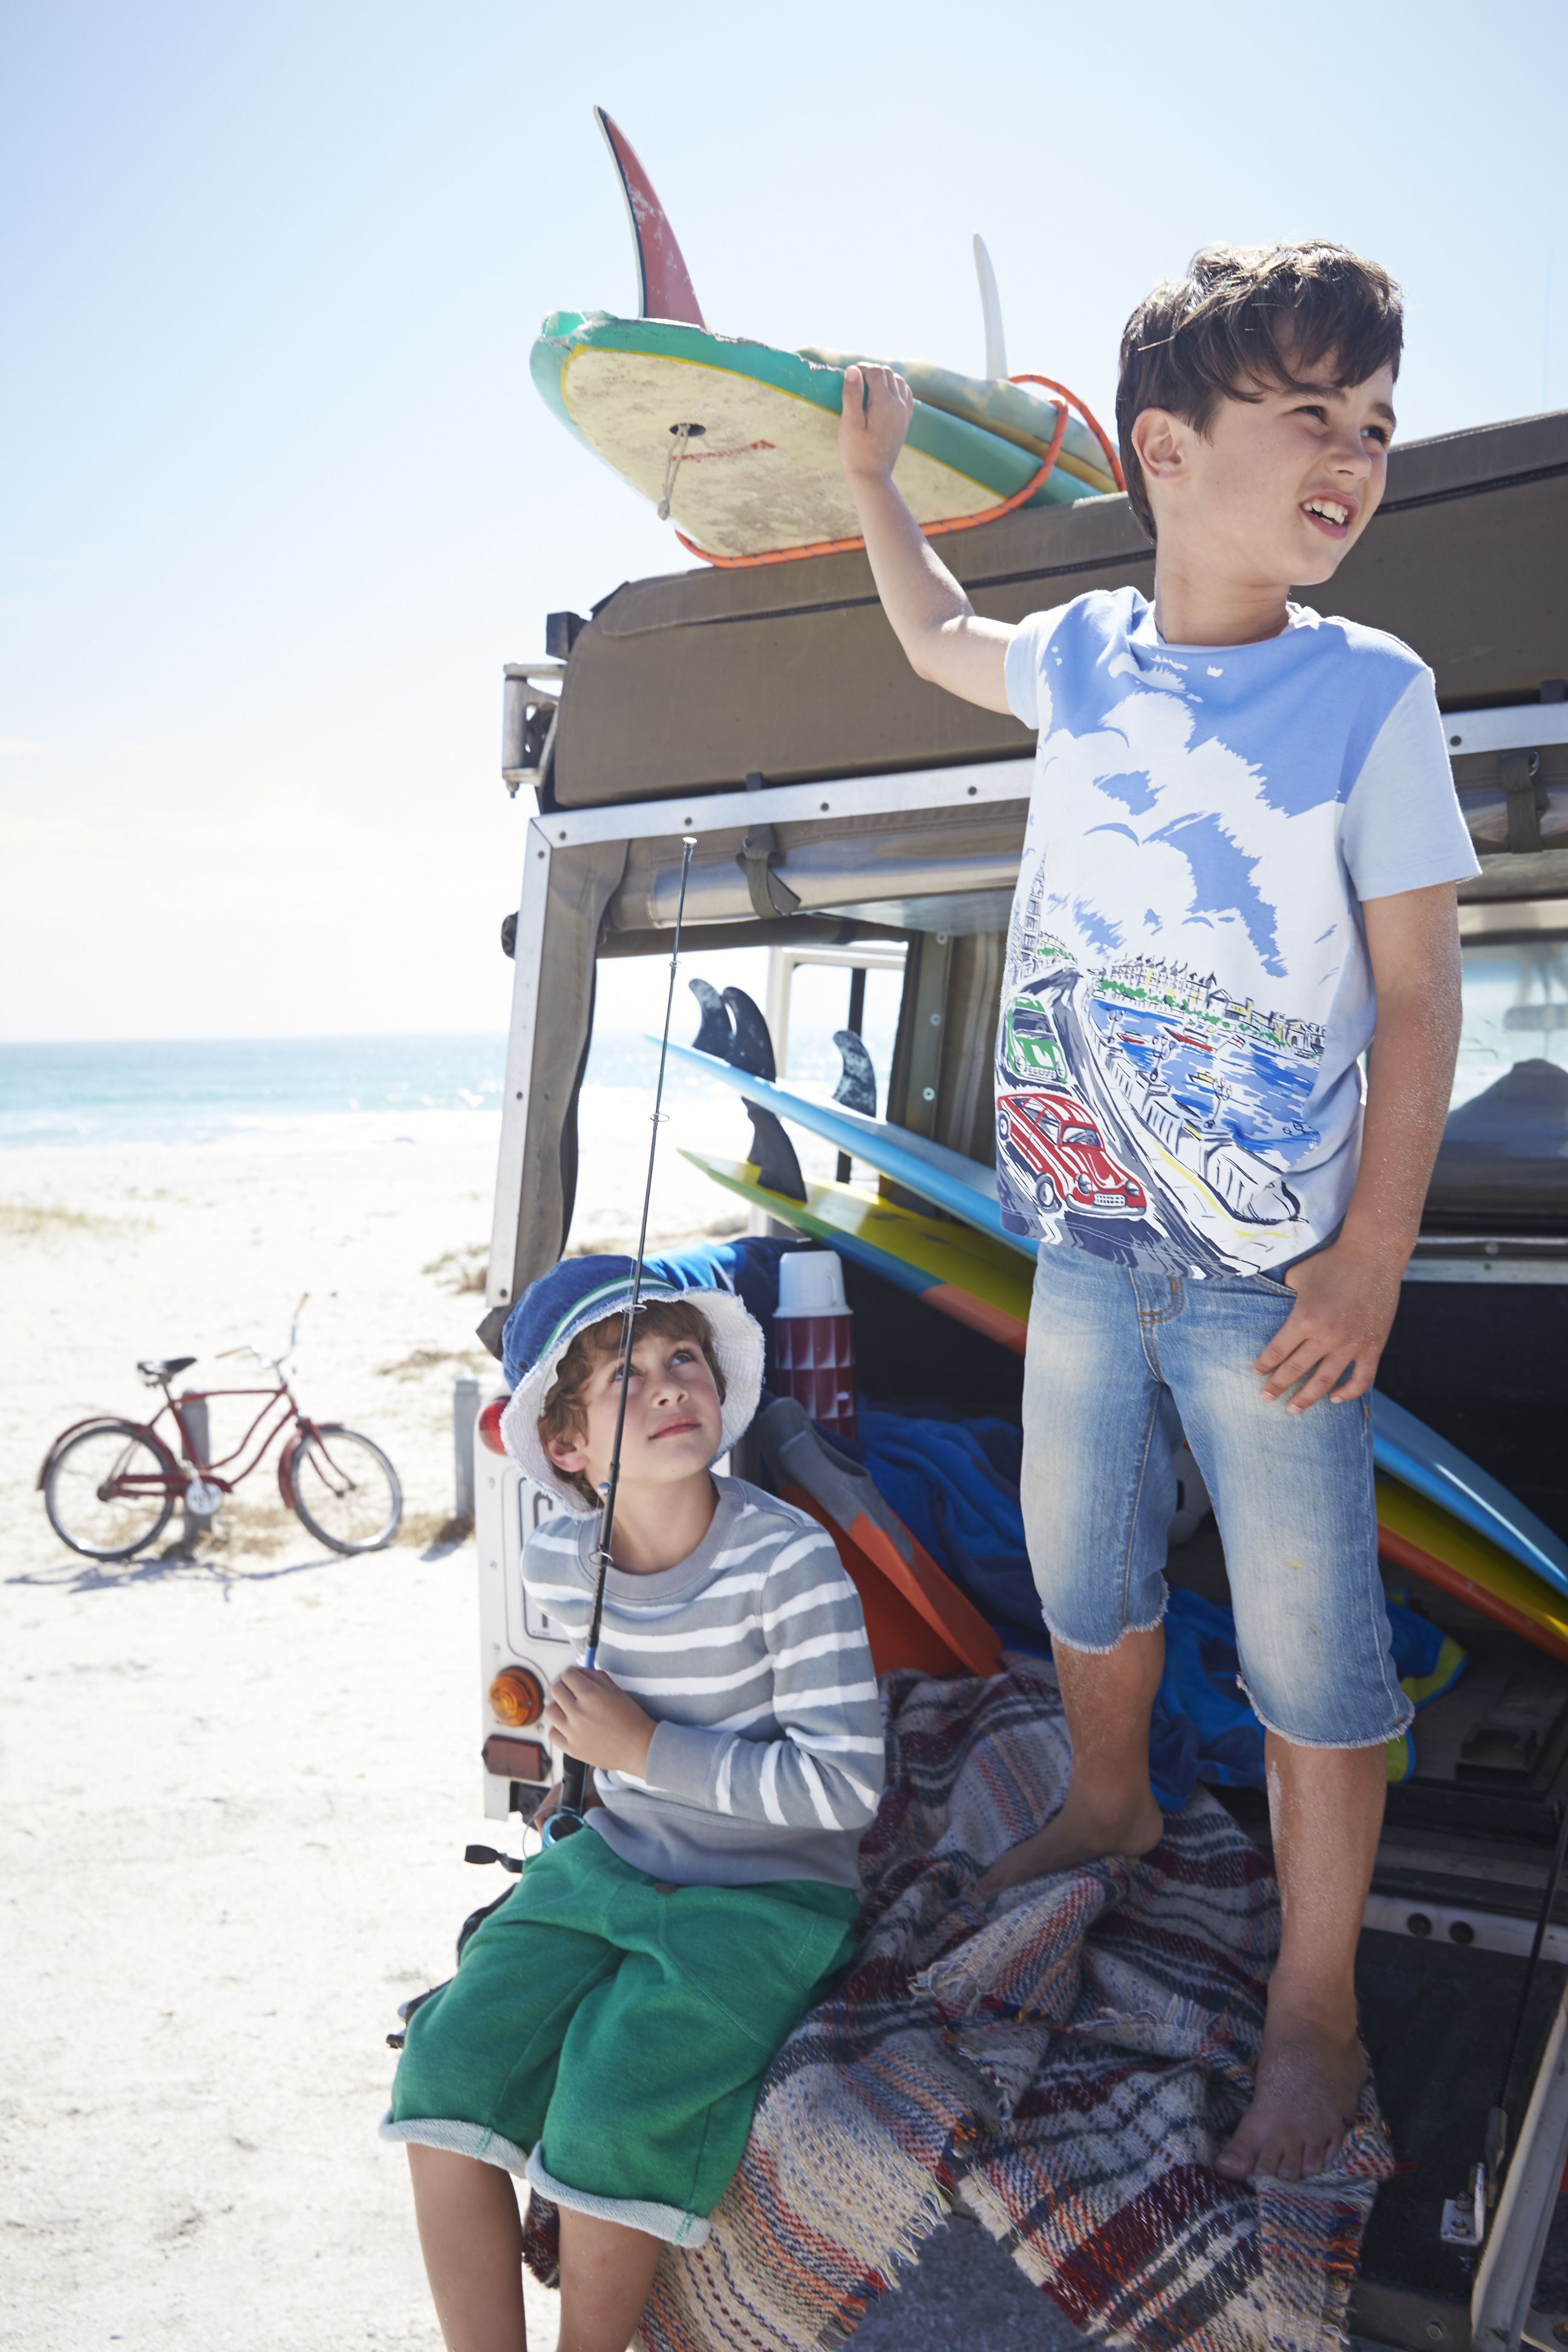 Mini boden summer 39 15 boys pinterest mini boden for Mini boden winter 2016